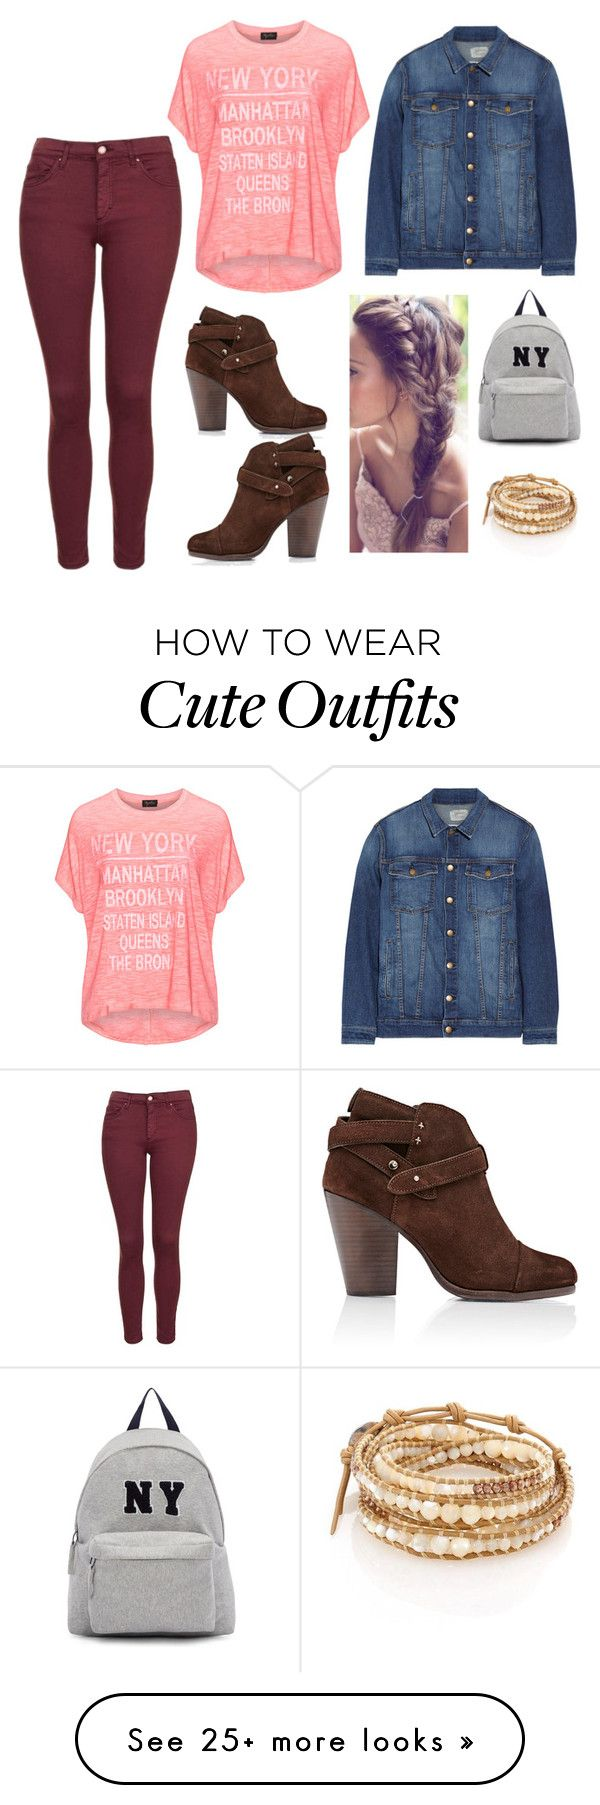 """""""Quick, Cute Outfit for School!"""" by fashionista4evah on Polyvore featuring Replace, Current/Elliott, Topshop, rag & bone, Chan Luu and Joshua's"""